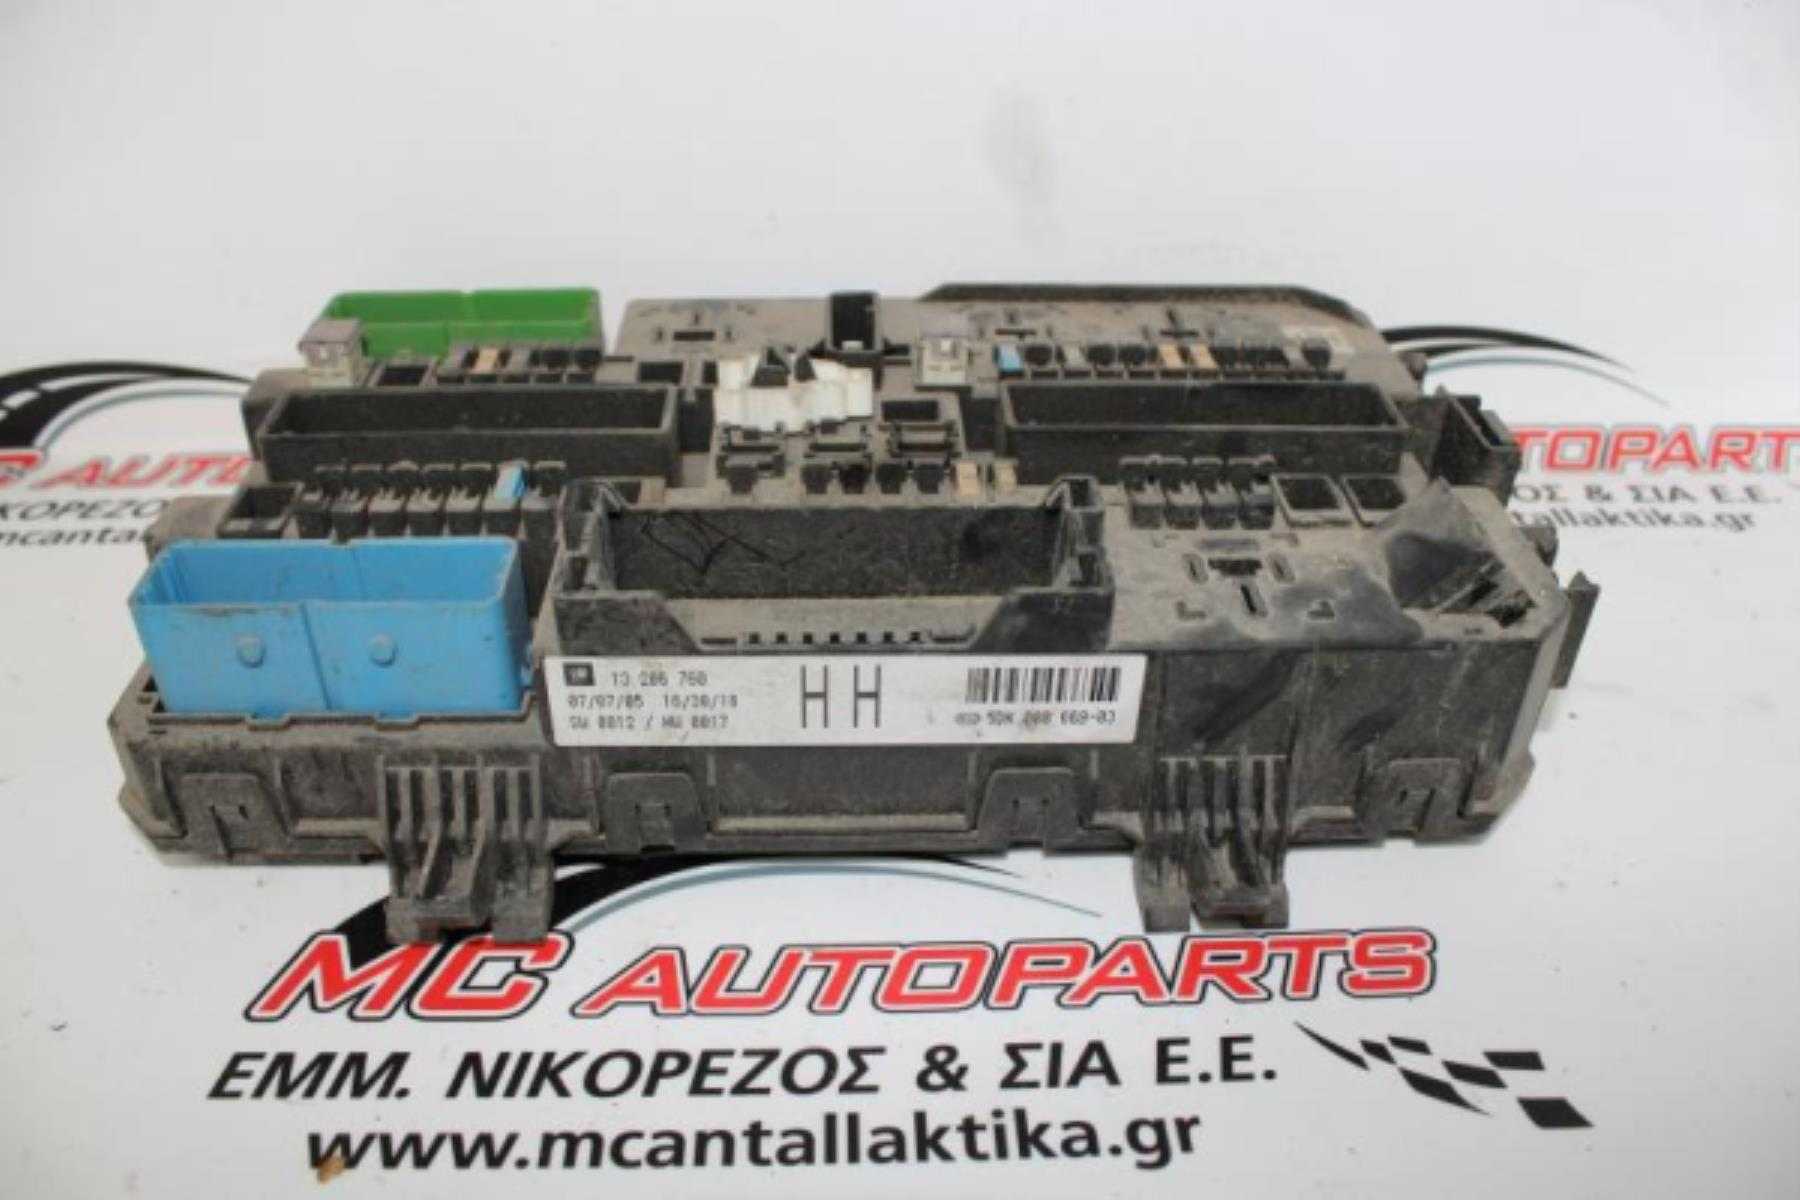 Picture of Ασφαλειοθήκη  OPEL ASTRA H (2004-2010)  13206760HH   έξω